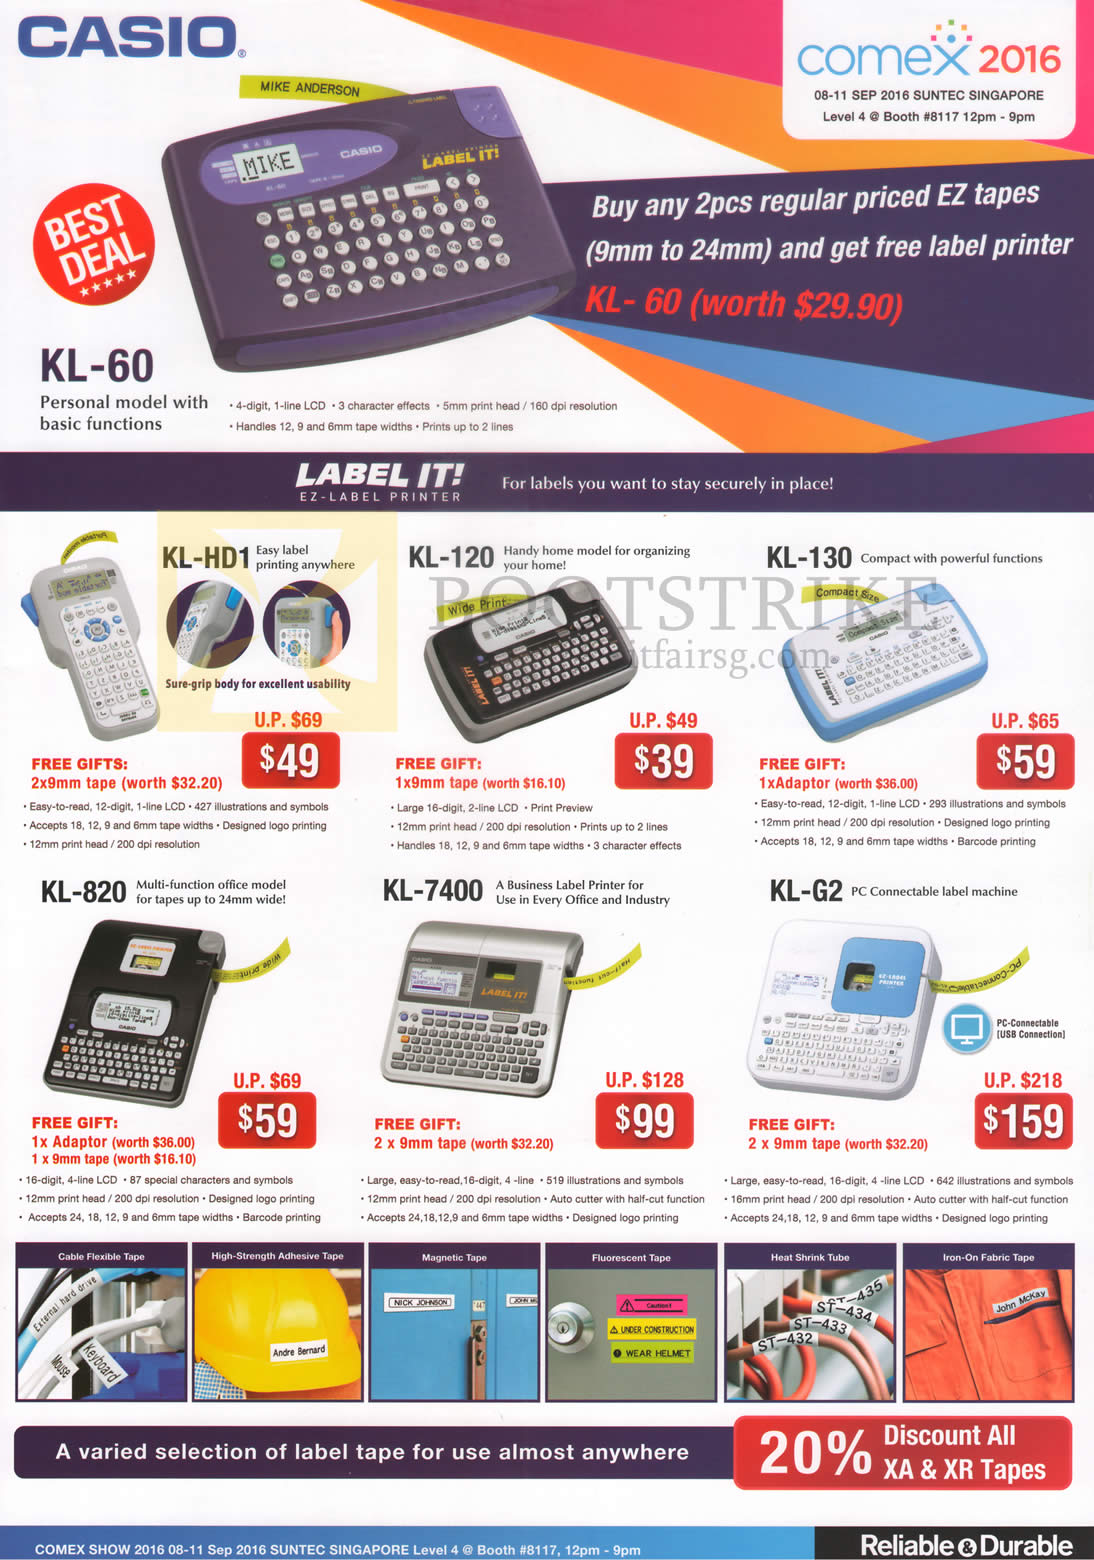 COMEX 2016 price list image brochure of Casio Labellers, Label It EZ-Label KL-60, HD1, 120, 130, 820, 7400, G2